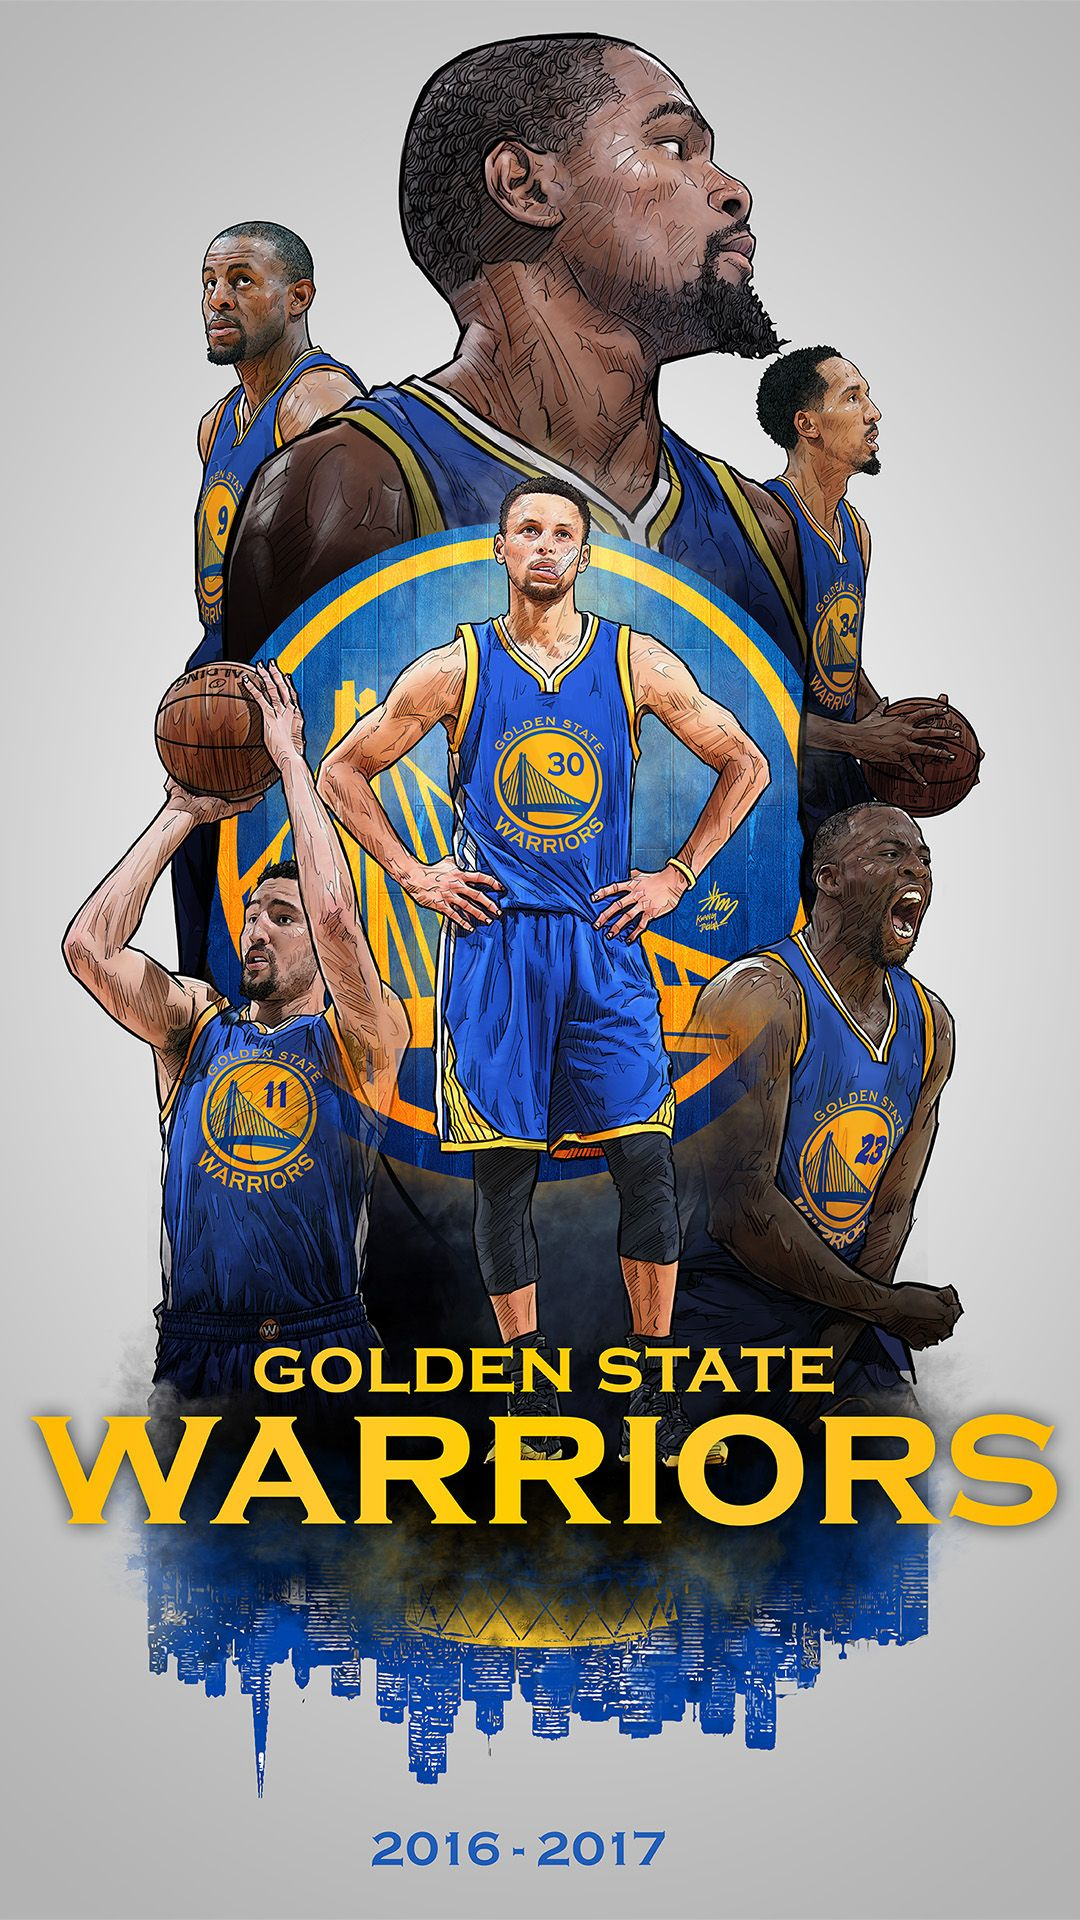 dfcd9b47fd2 Confira este projeto do  Behance  u201c2016-2017 GOLDEN STATE WARRIORS  Smartphone Lock Screenu201d